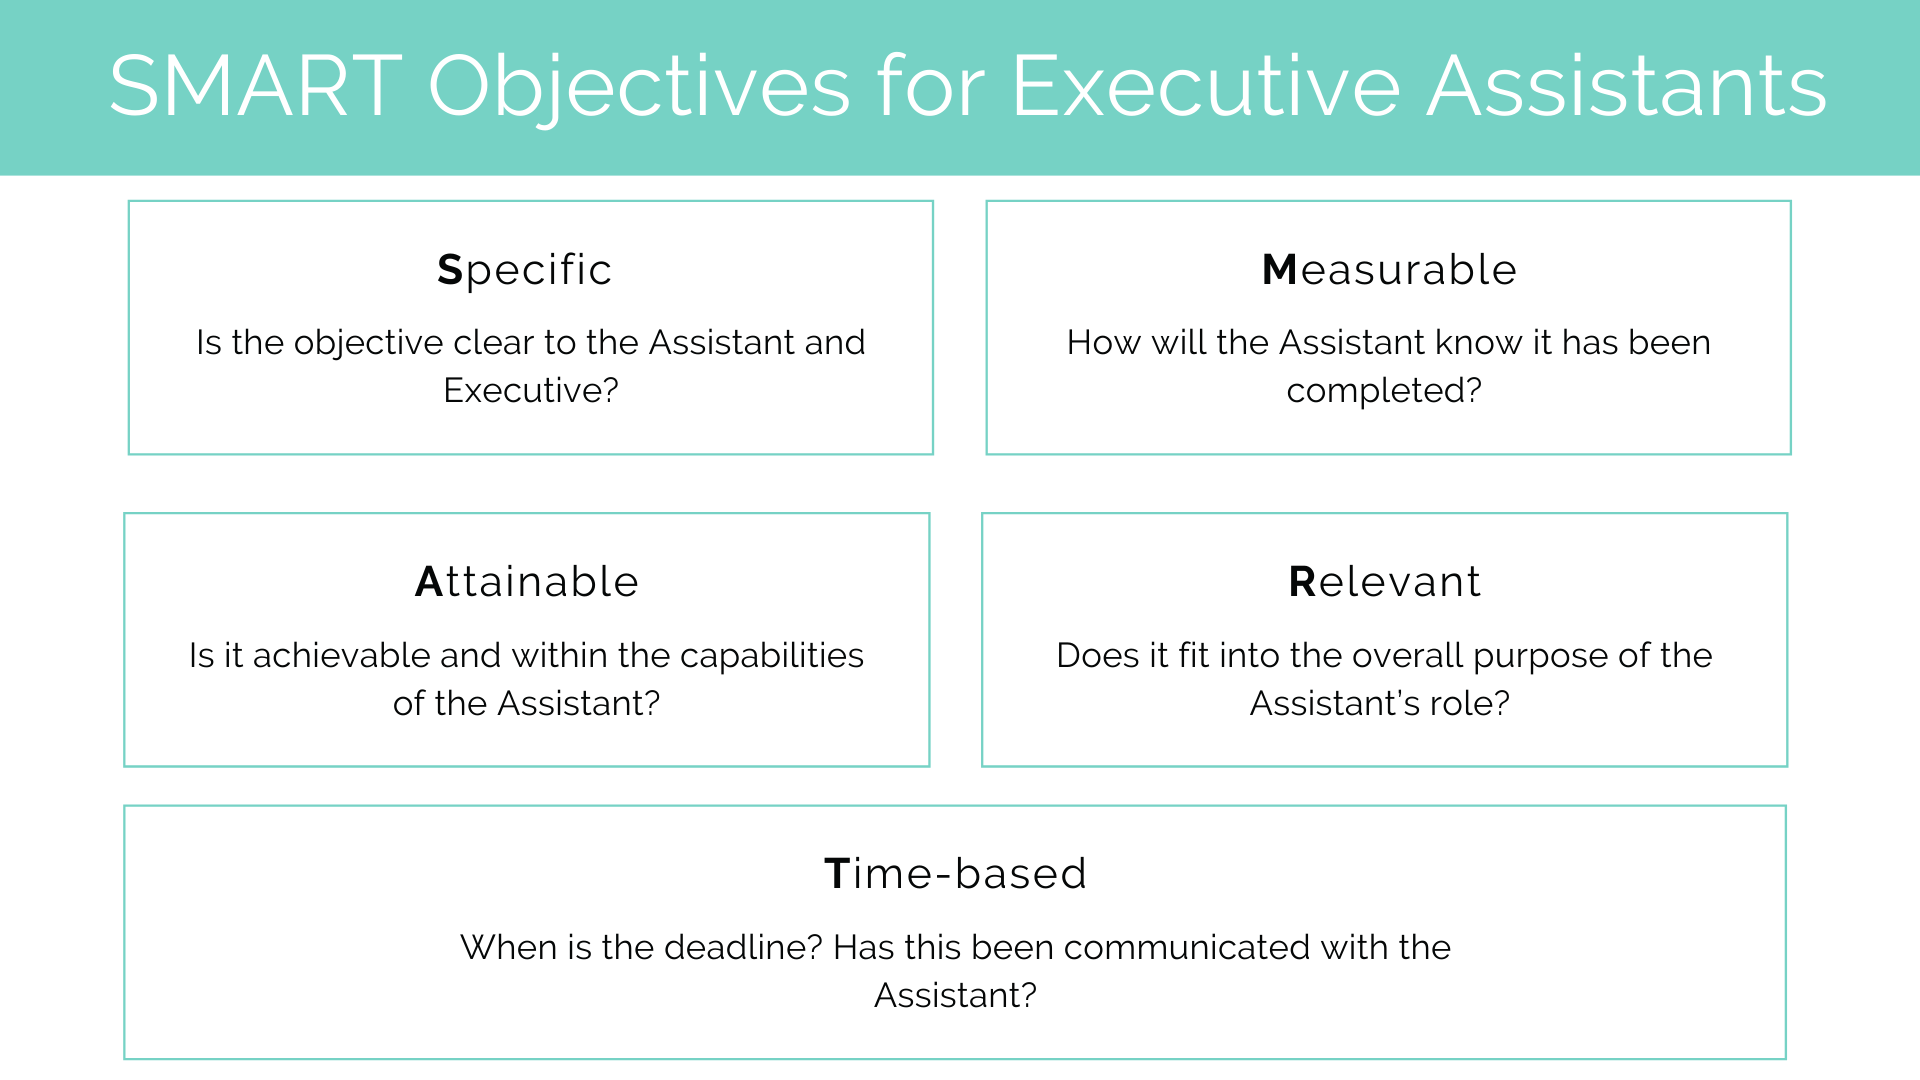 SMART objectives for Executive Assistants